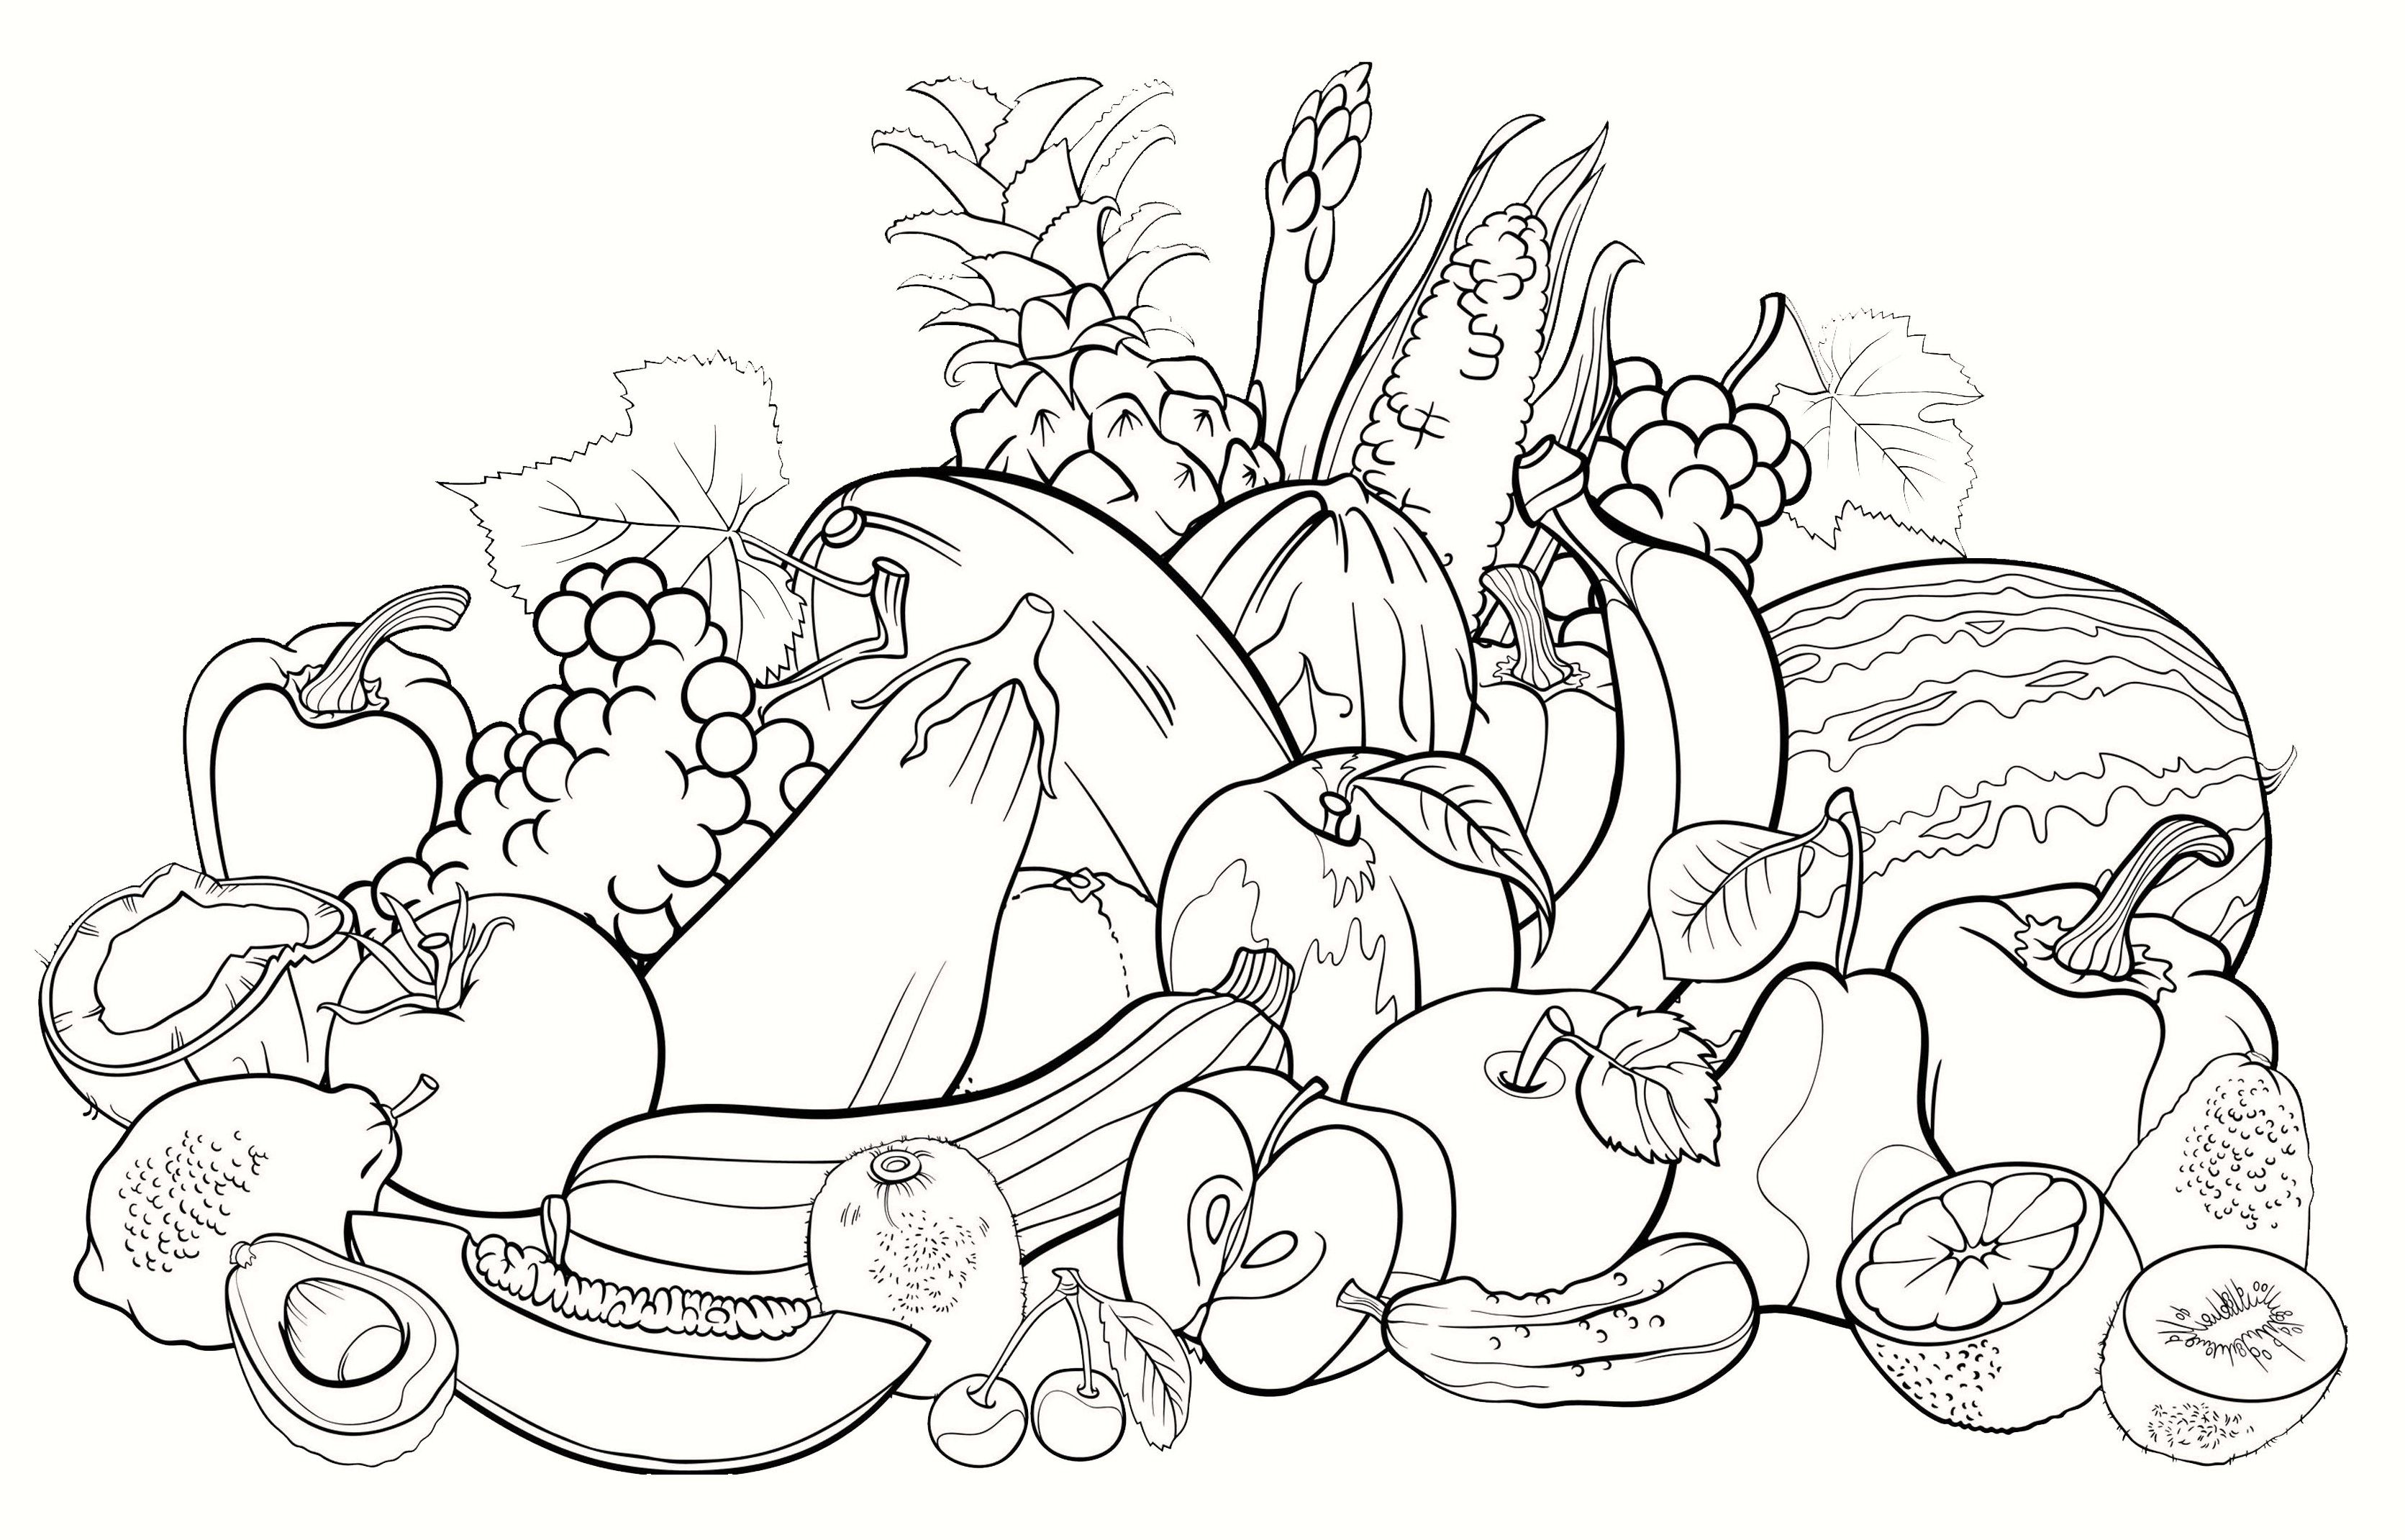 Fruit Basket Coloring Pages Free Printable Fruit Basket Coloring Pages Cute Color Fruits Book An Fruit Coloring Pages Easter Coloring Pages Free Coloring Pages